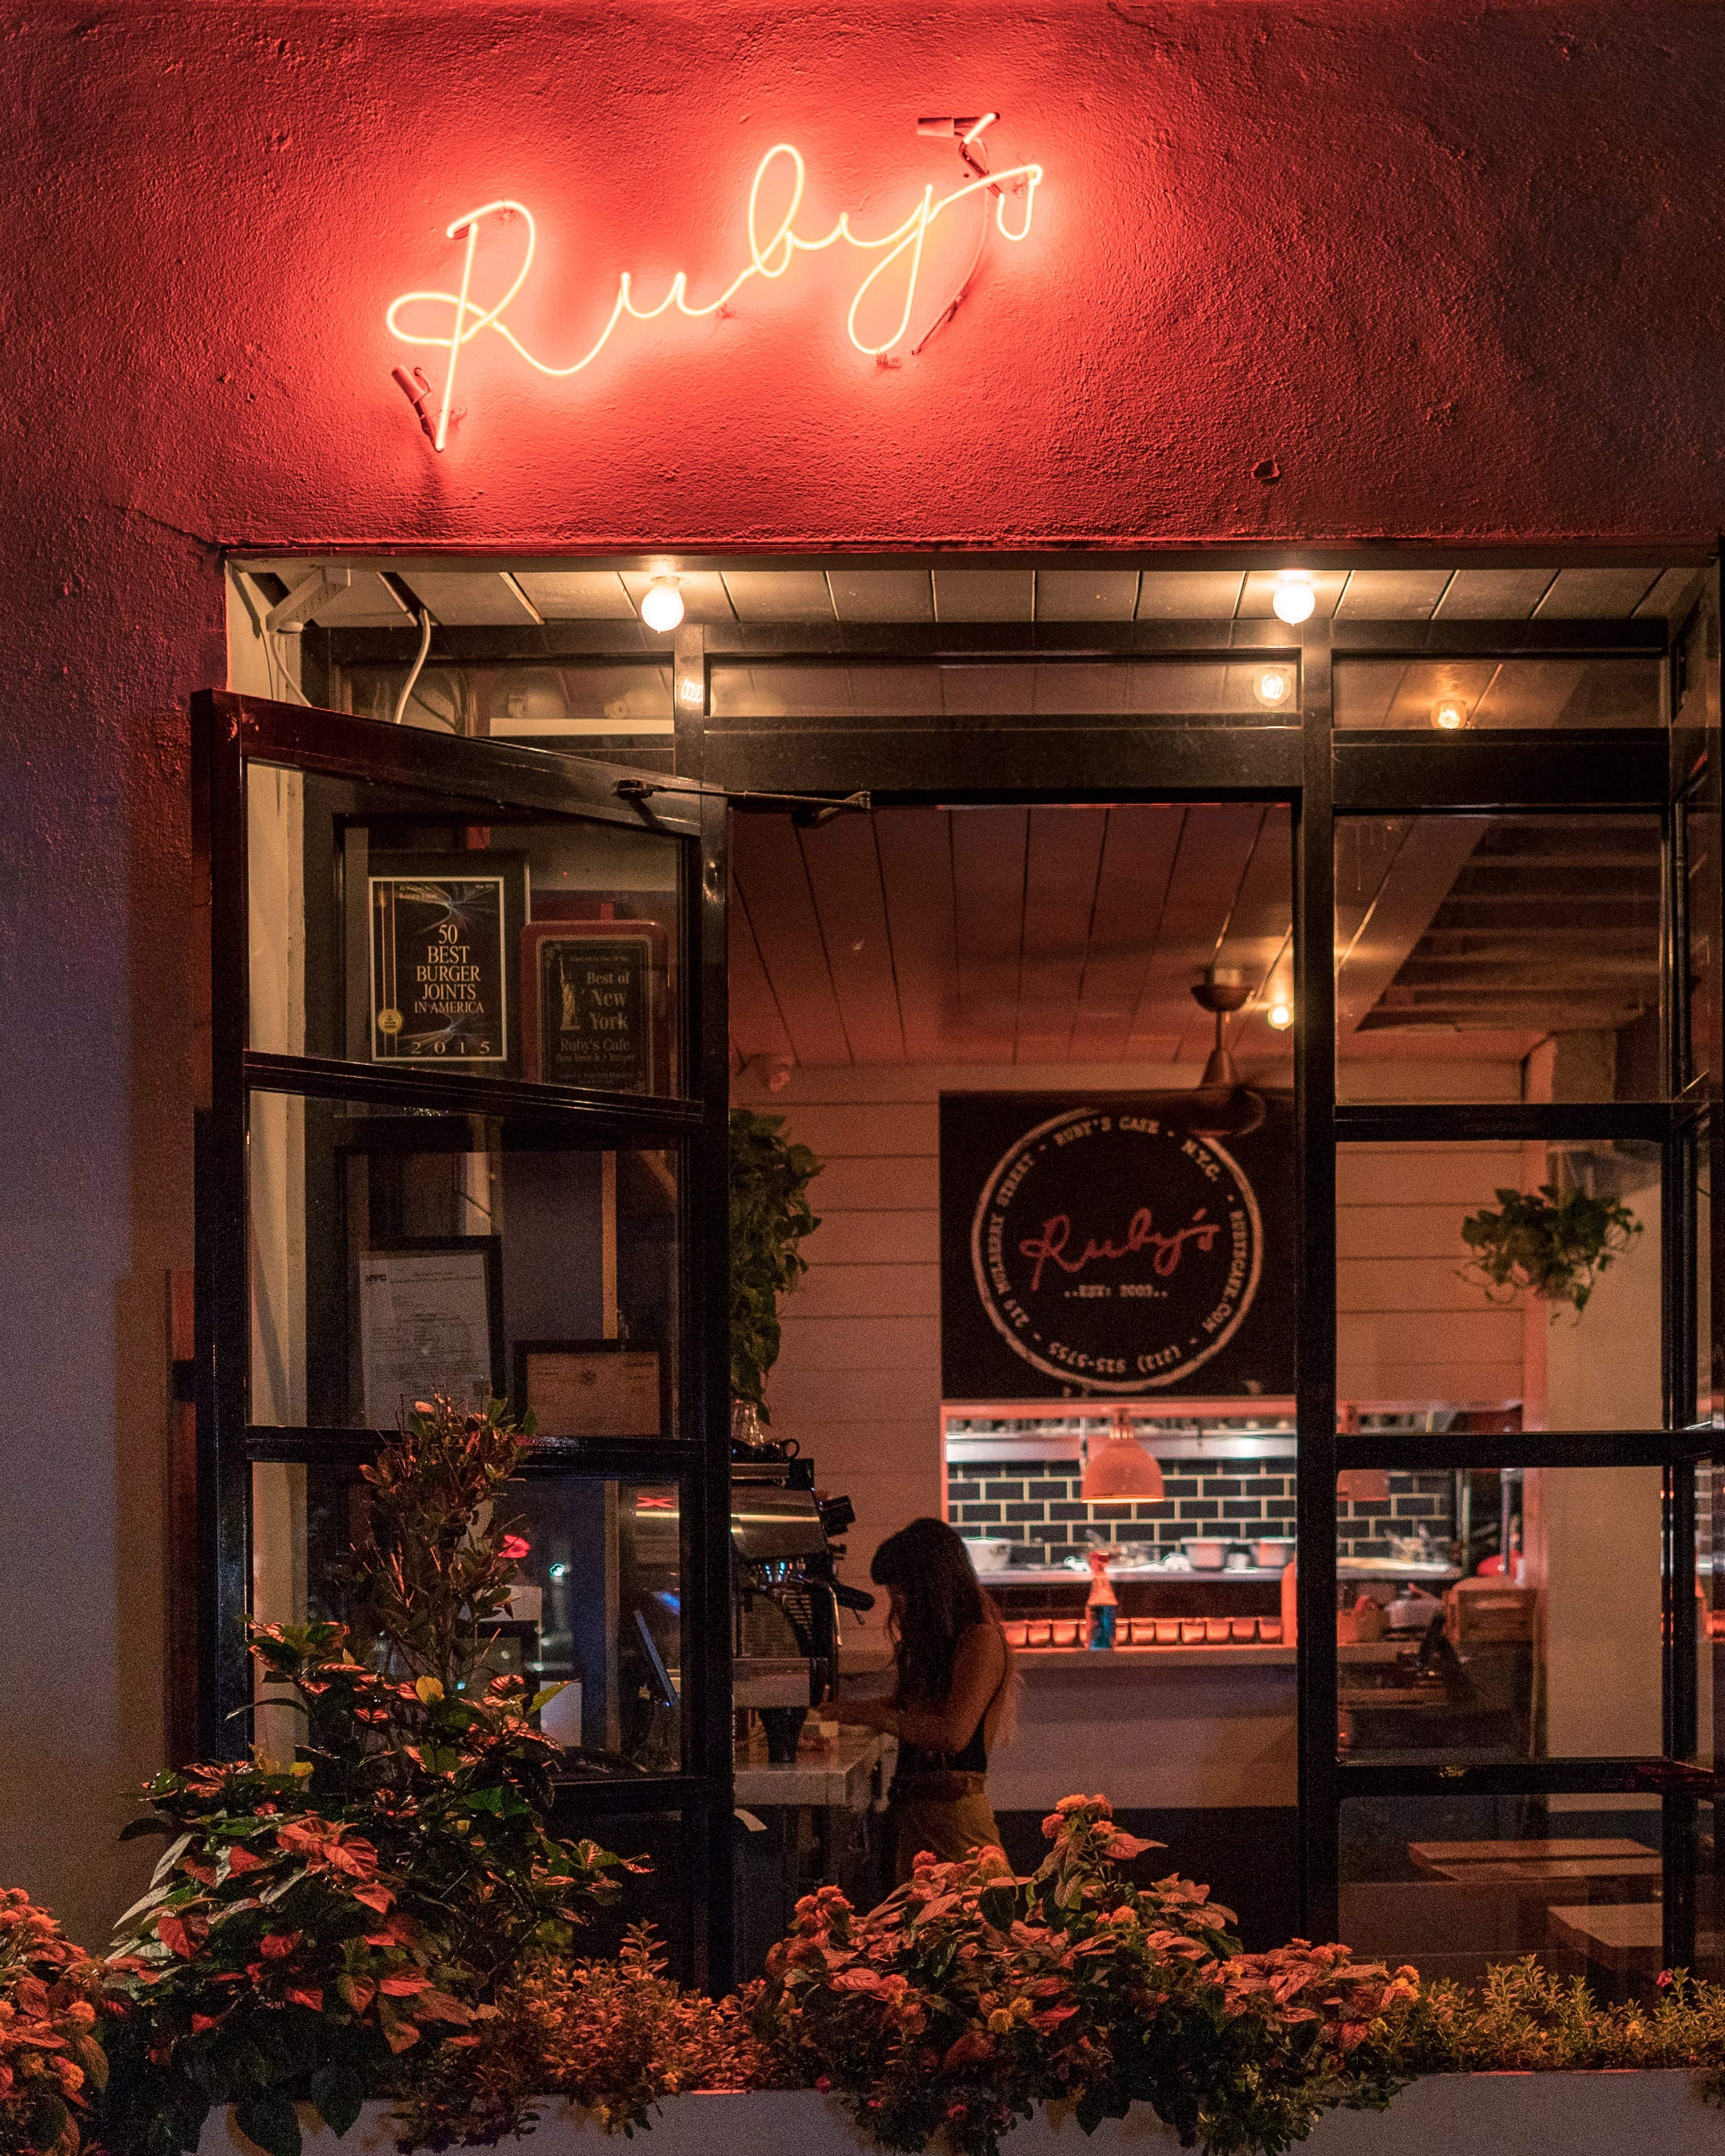 Ruby's neon light signage